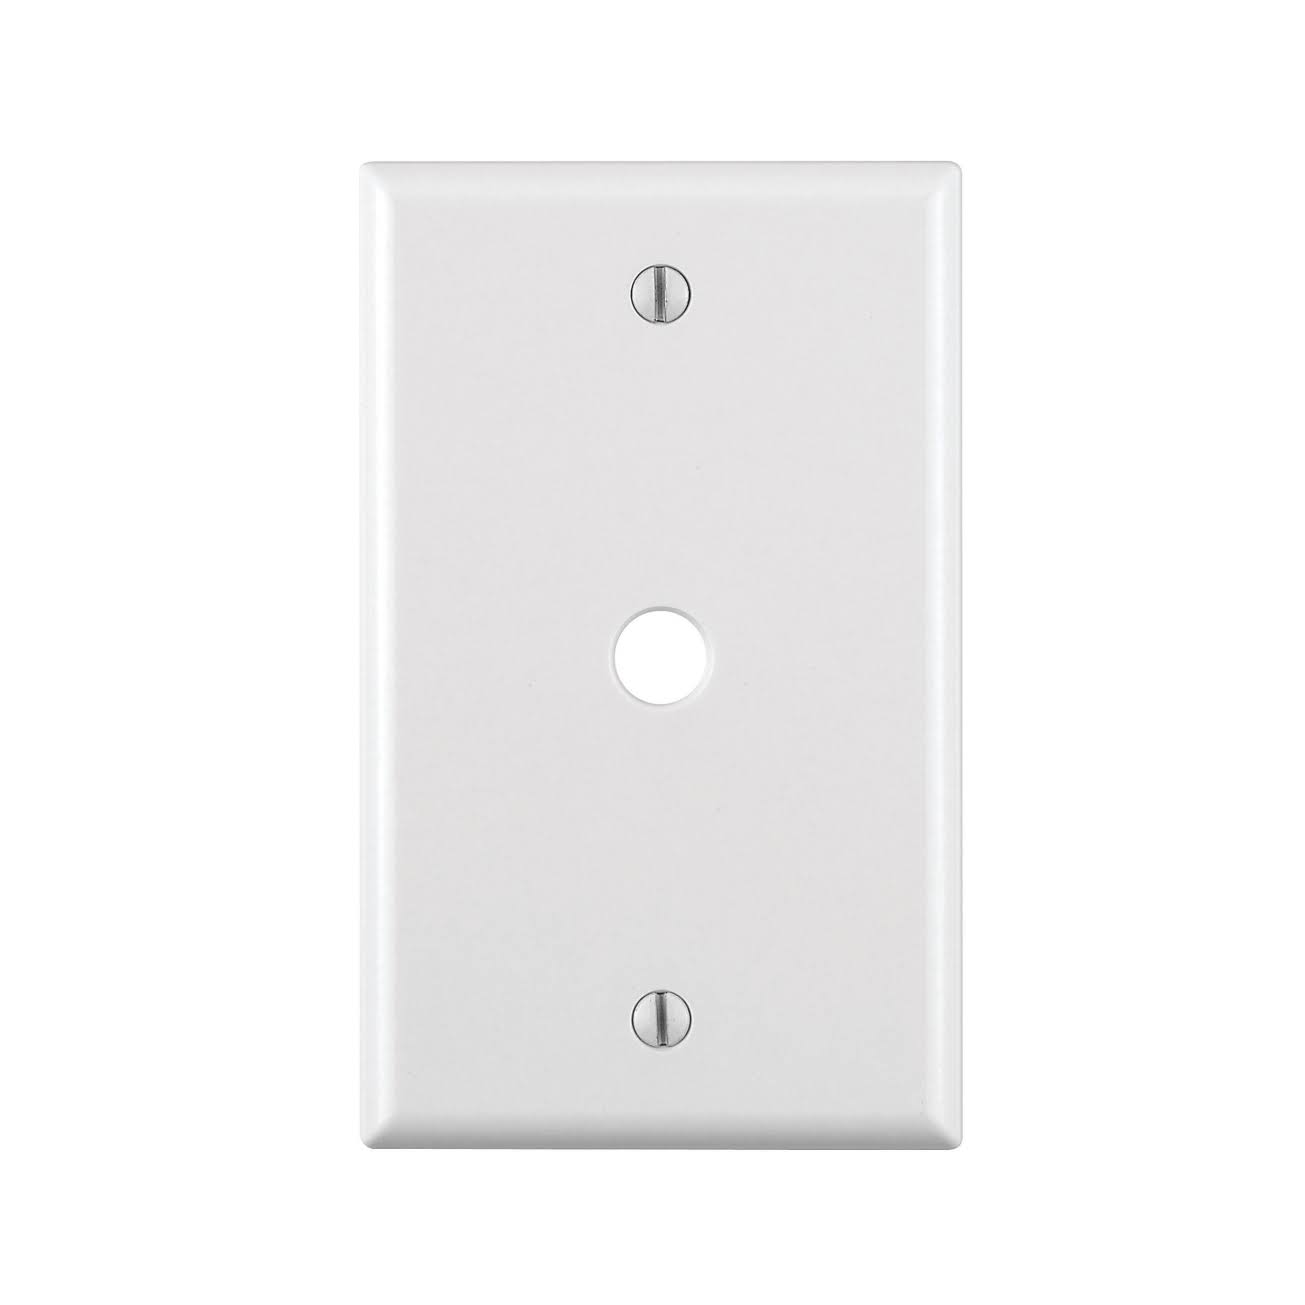 Leviton 1-Gang Phone/Cable Box Mount Wall Plate - White